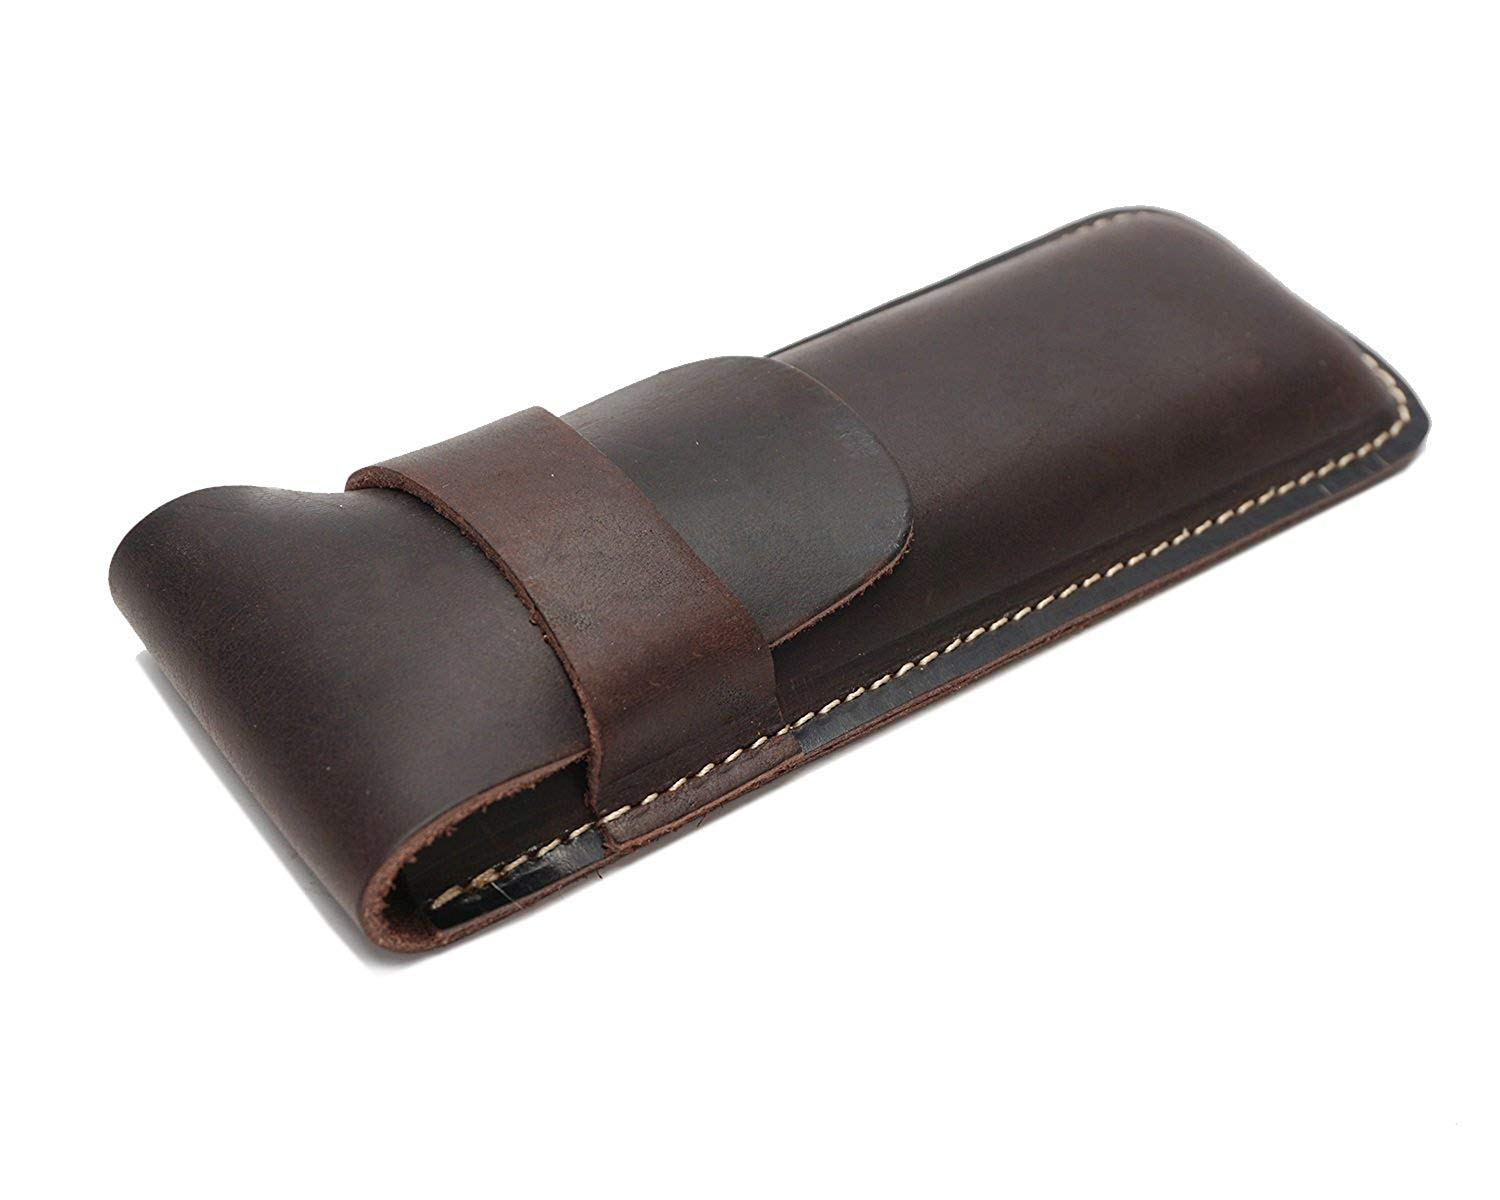 BGRFEB Retro Leather Bag Leather Cowhide Vertical Bag Buckle Unisex Color : Brown, Size : Small